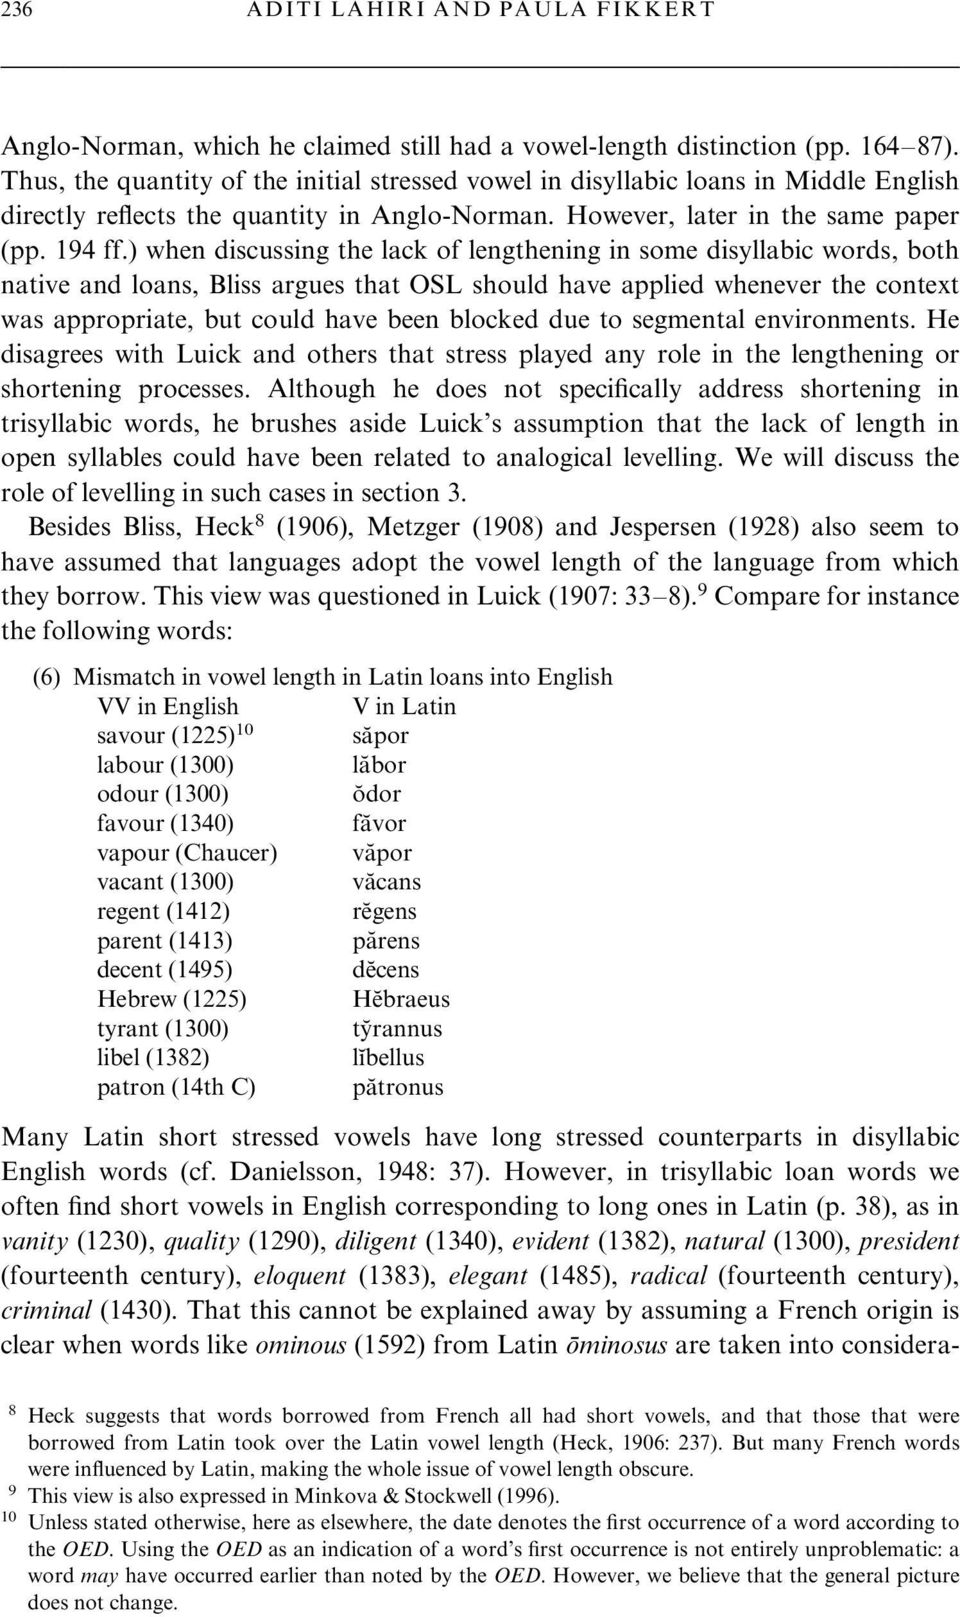 ) when discussing the lack of lengthening in some disyllabic words, both native and loans, Bliss argues that OSL should have applied whenever the context was appropriate, but could have been blocked